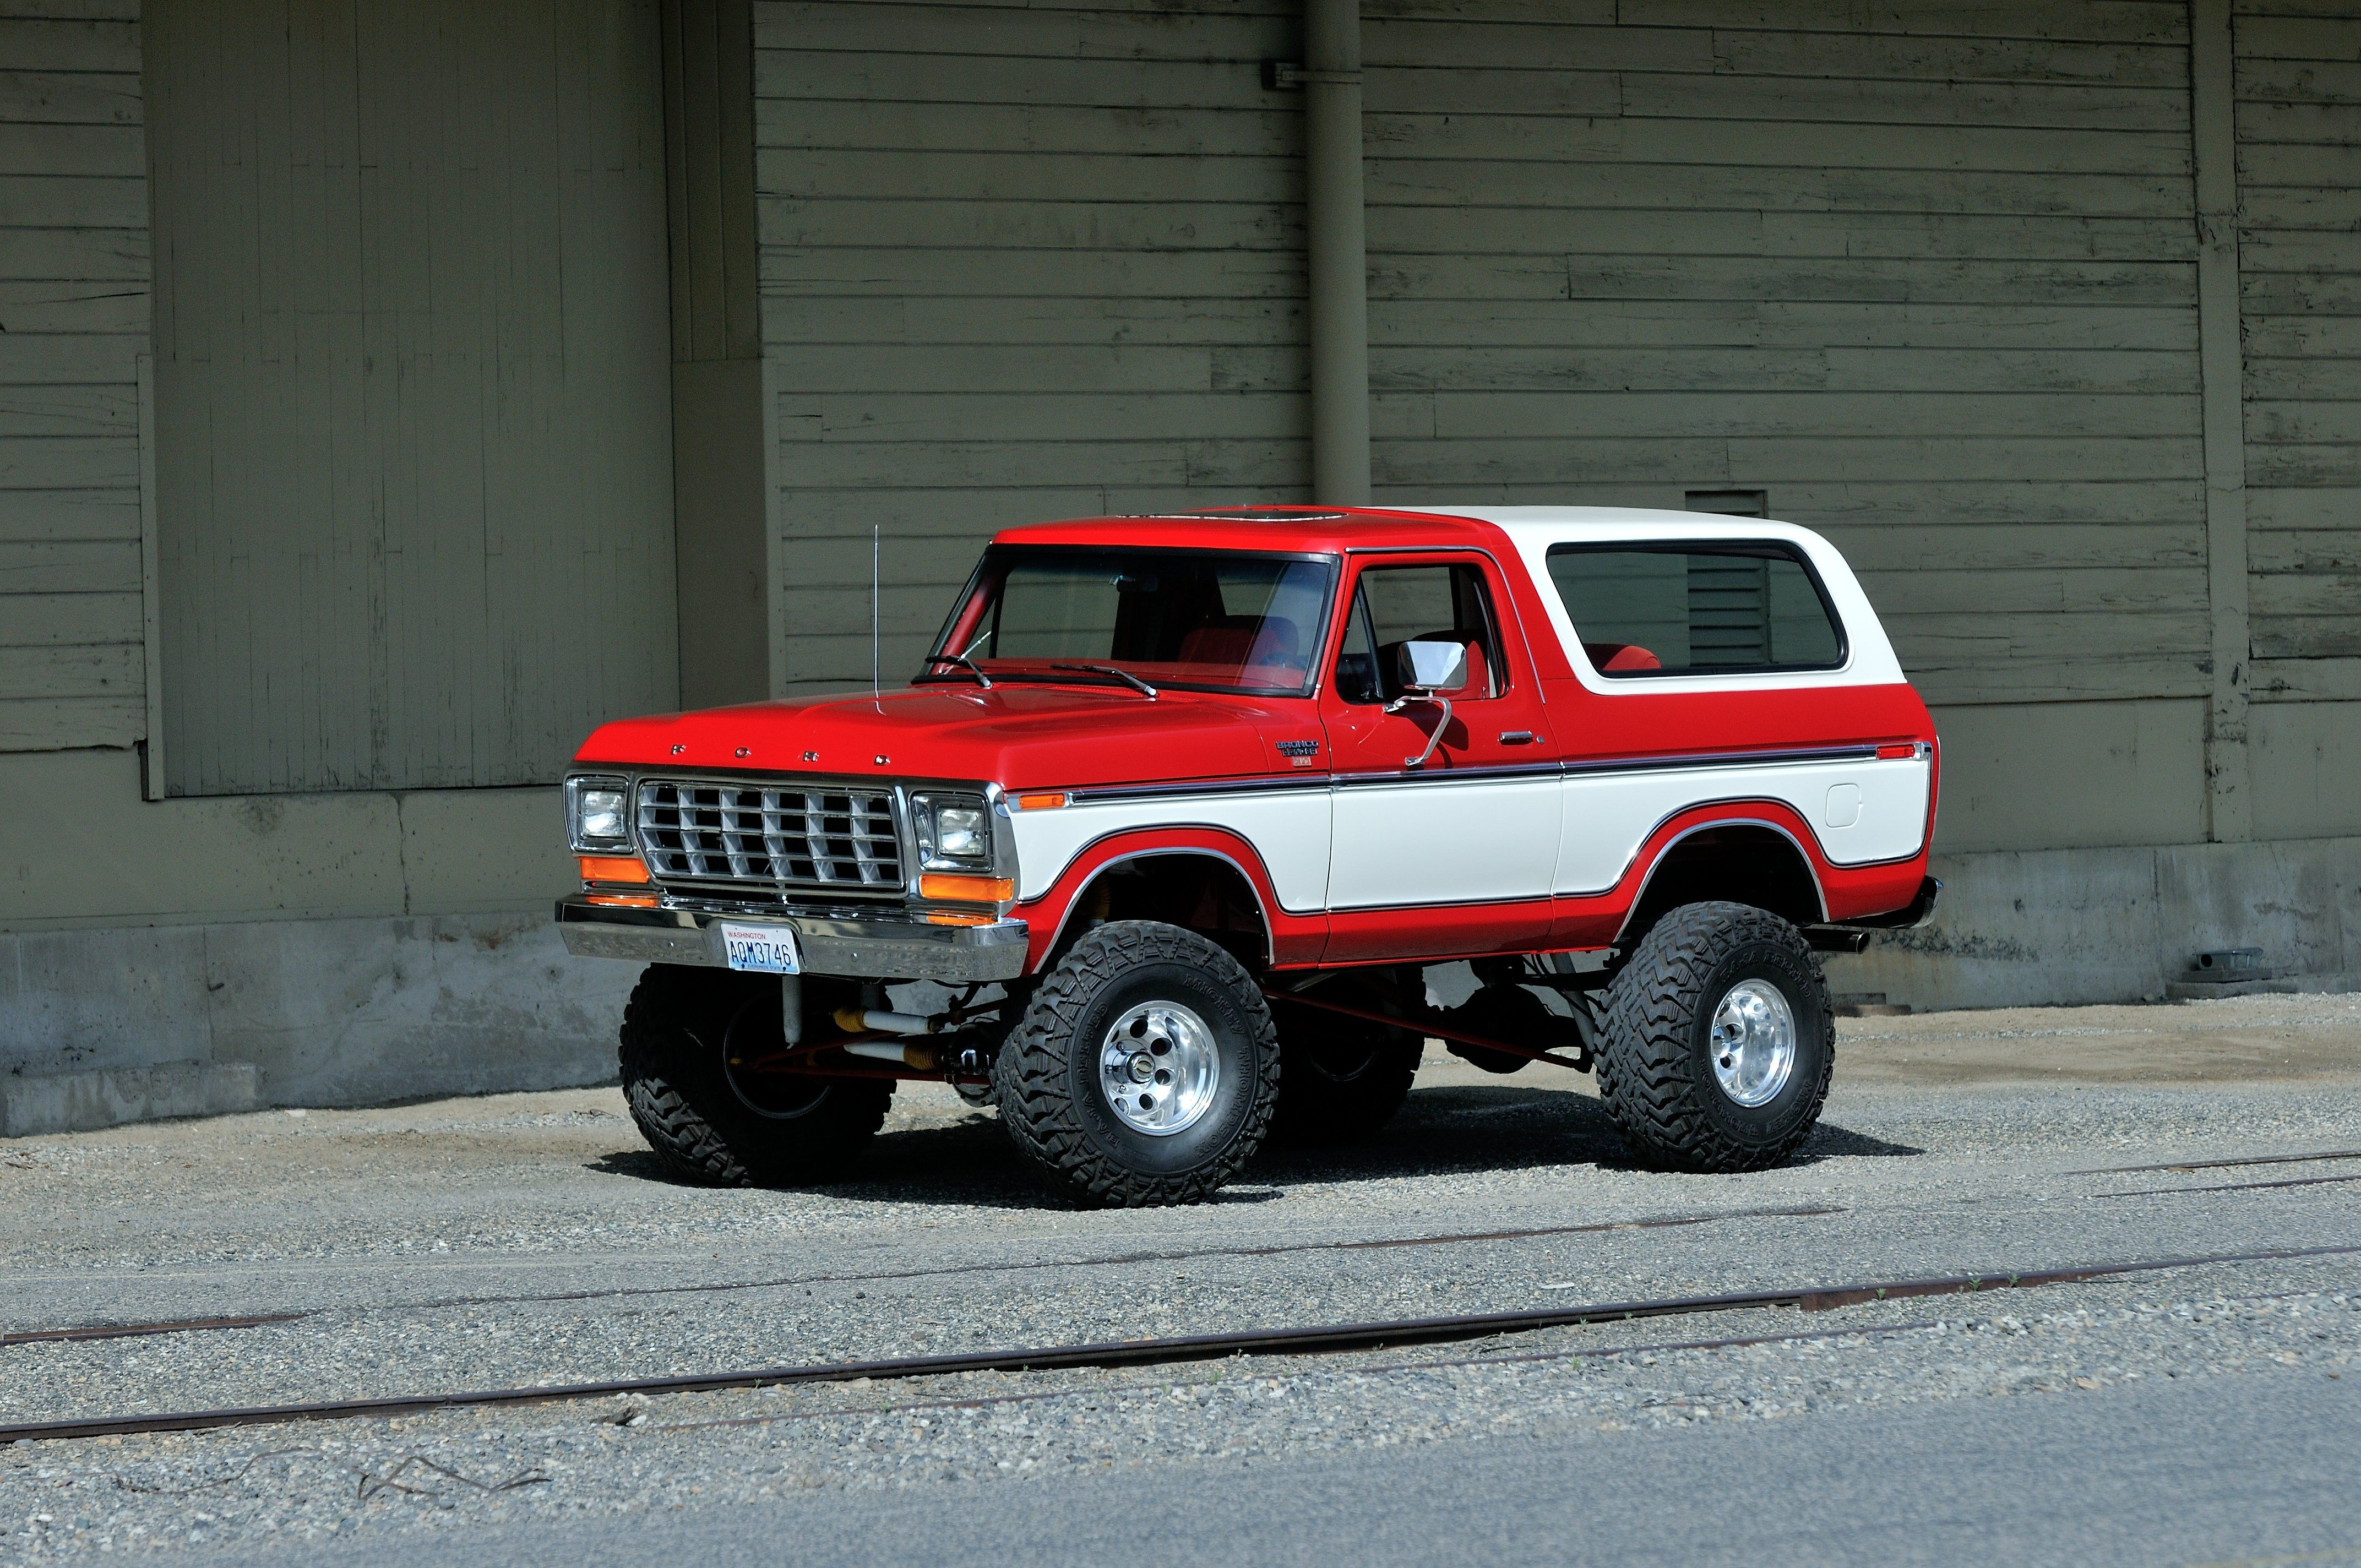 1979 Ford Bronco Off Road Four Wheel Drive USA -01 | Vehicles ...